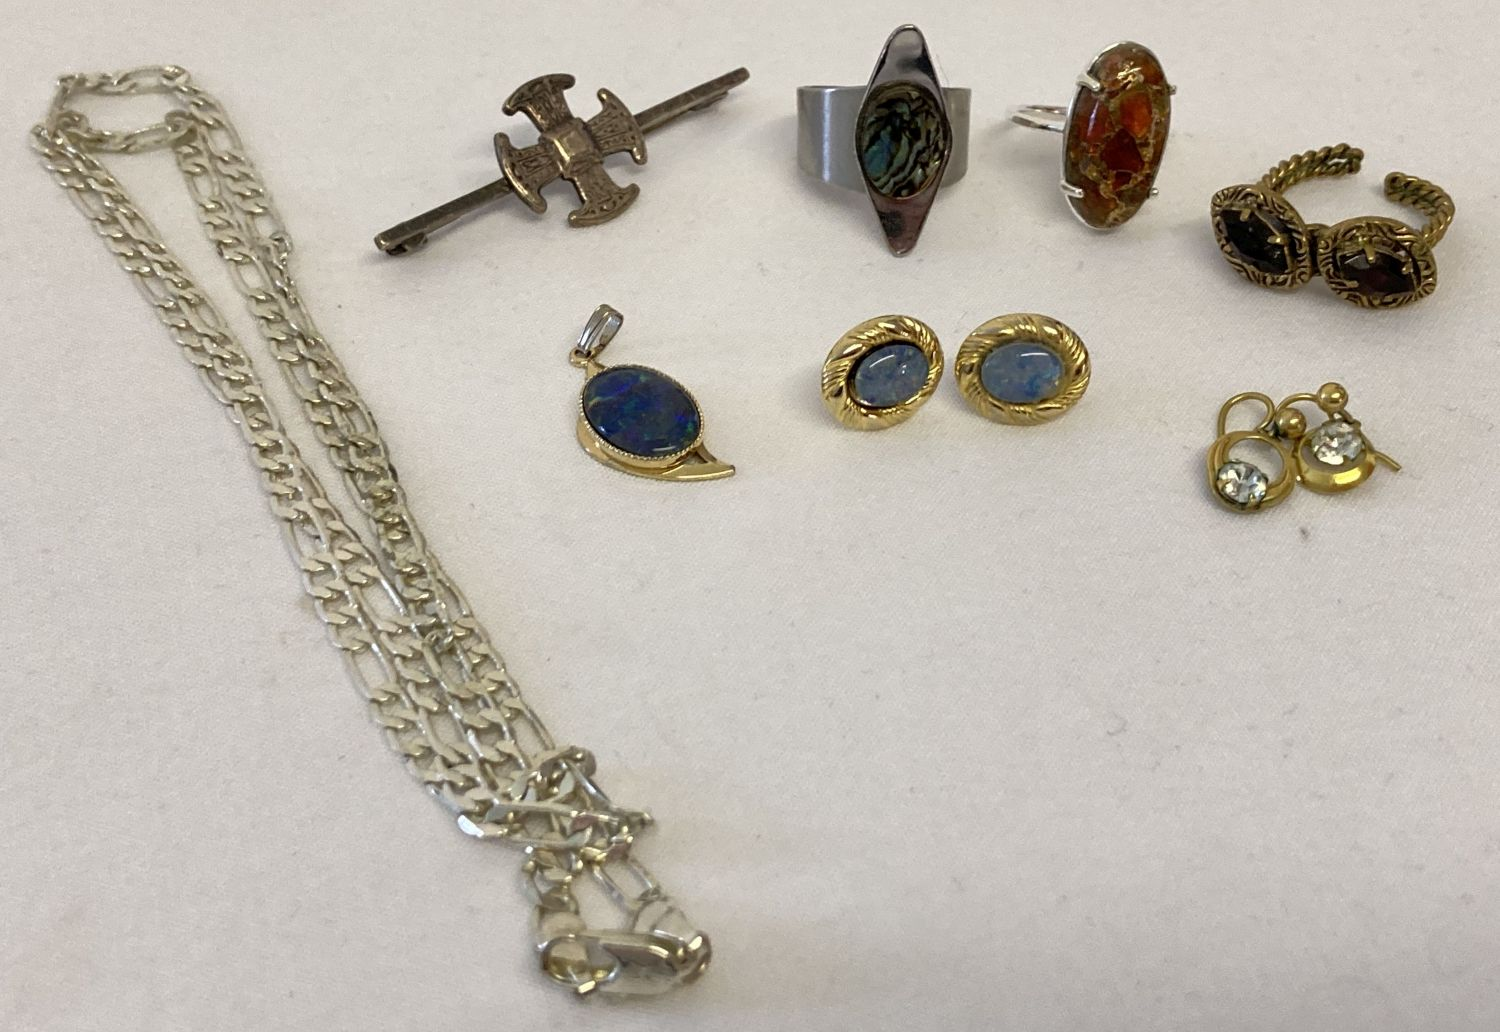 A small collection of vintage and modern costume and white metal jewellery.